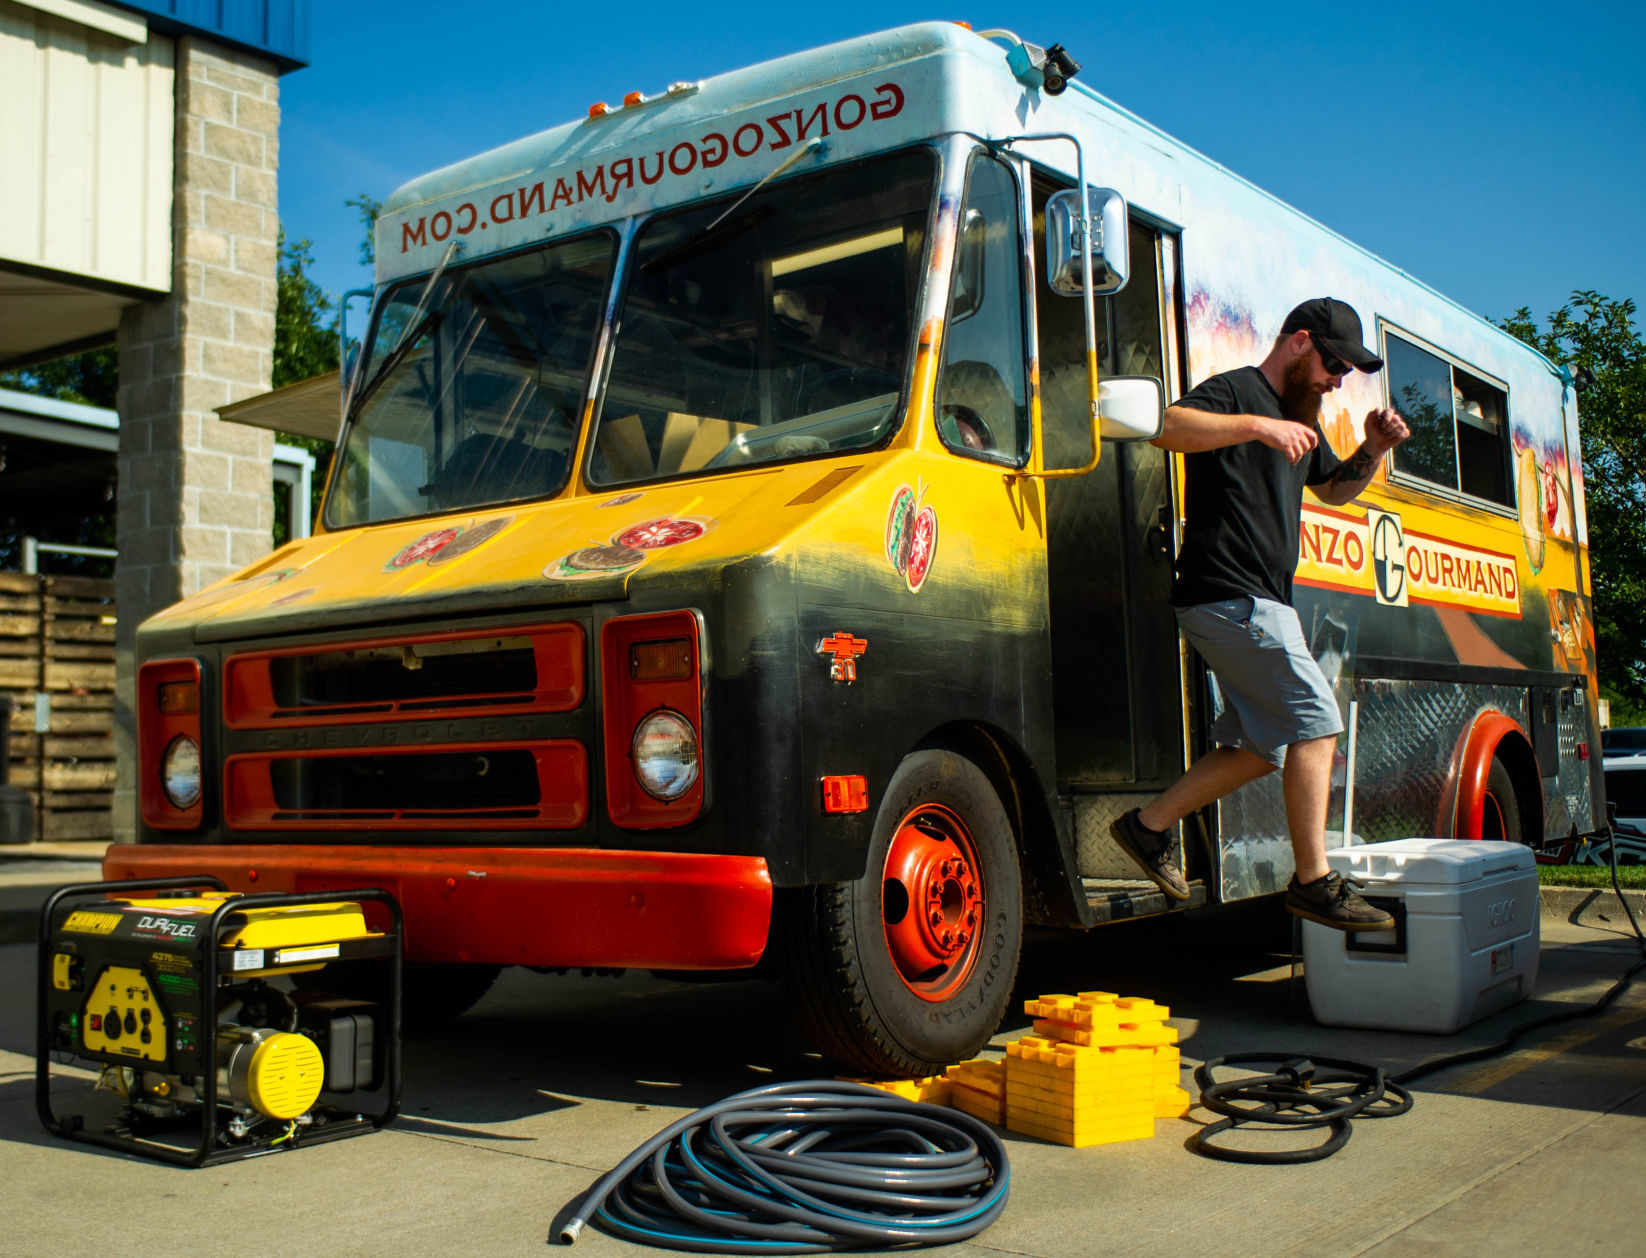 Lincoln, NE food trucks and mobile dining options keep growing